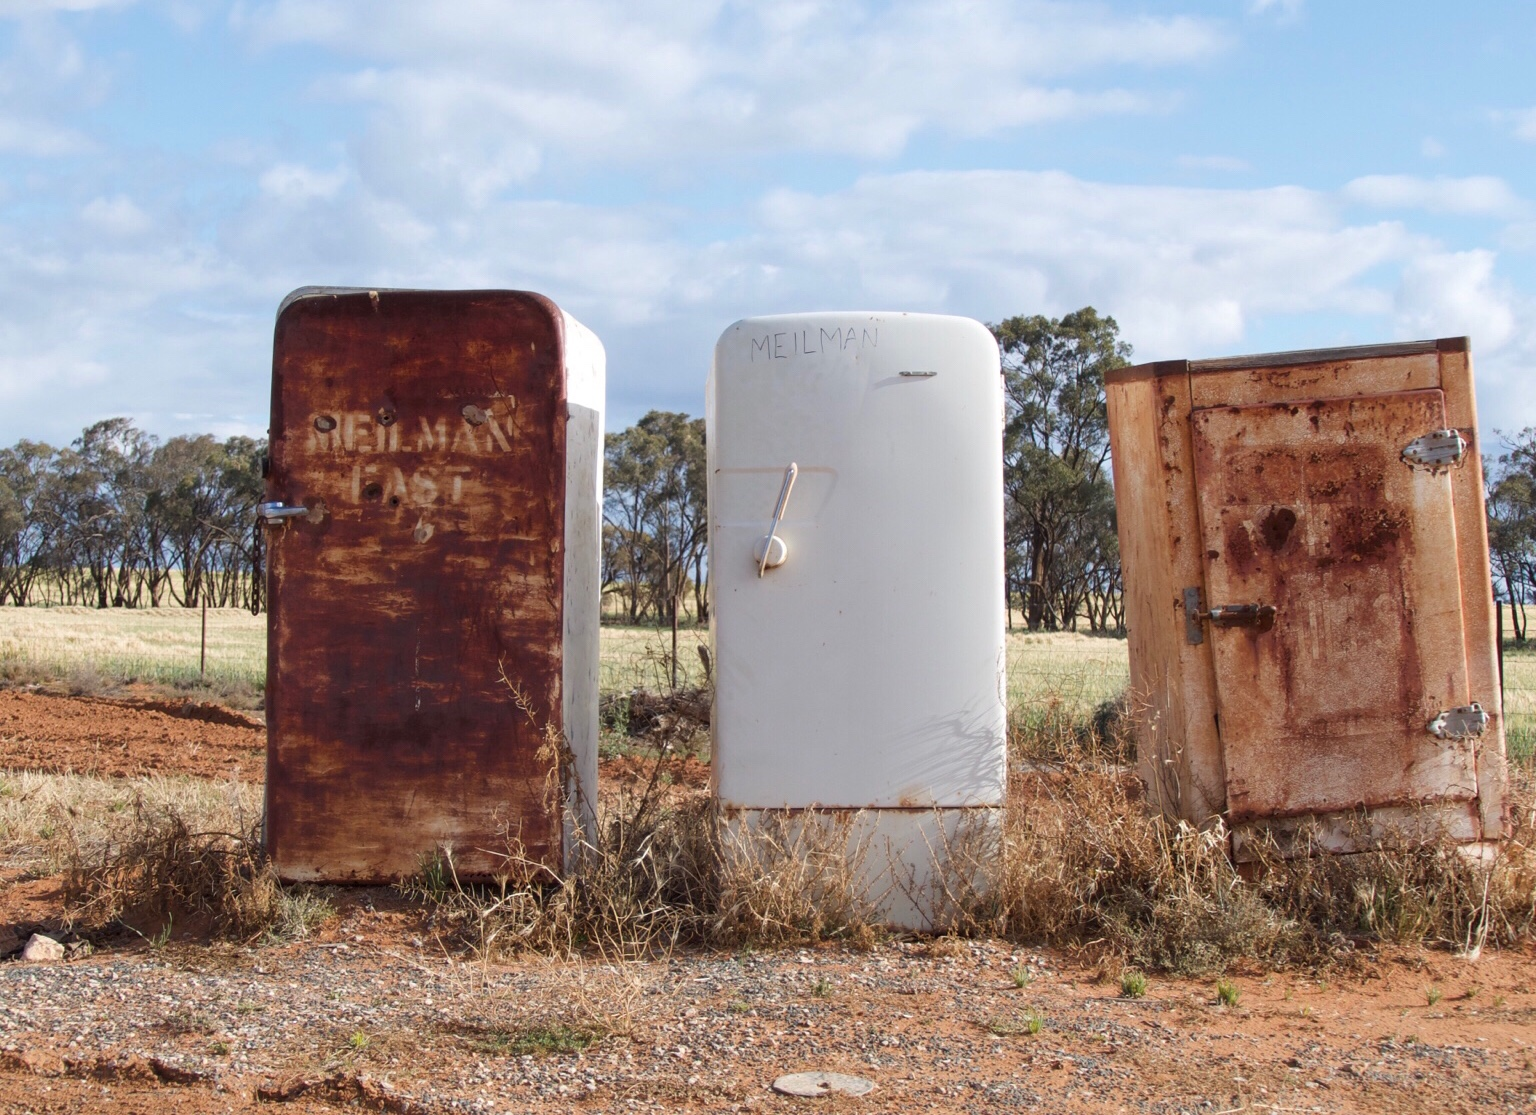 3 old fridges being used as mailboxes!